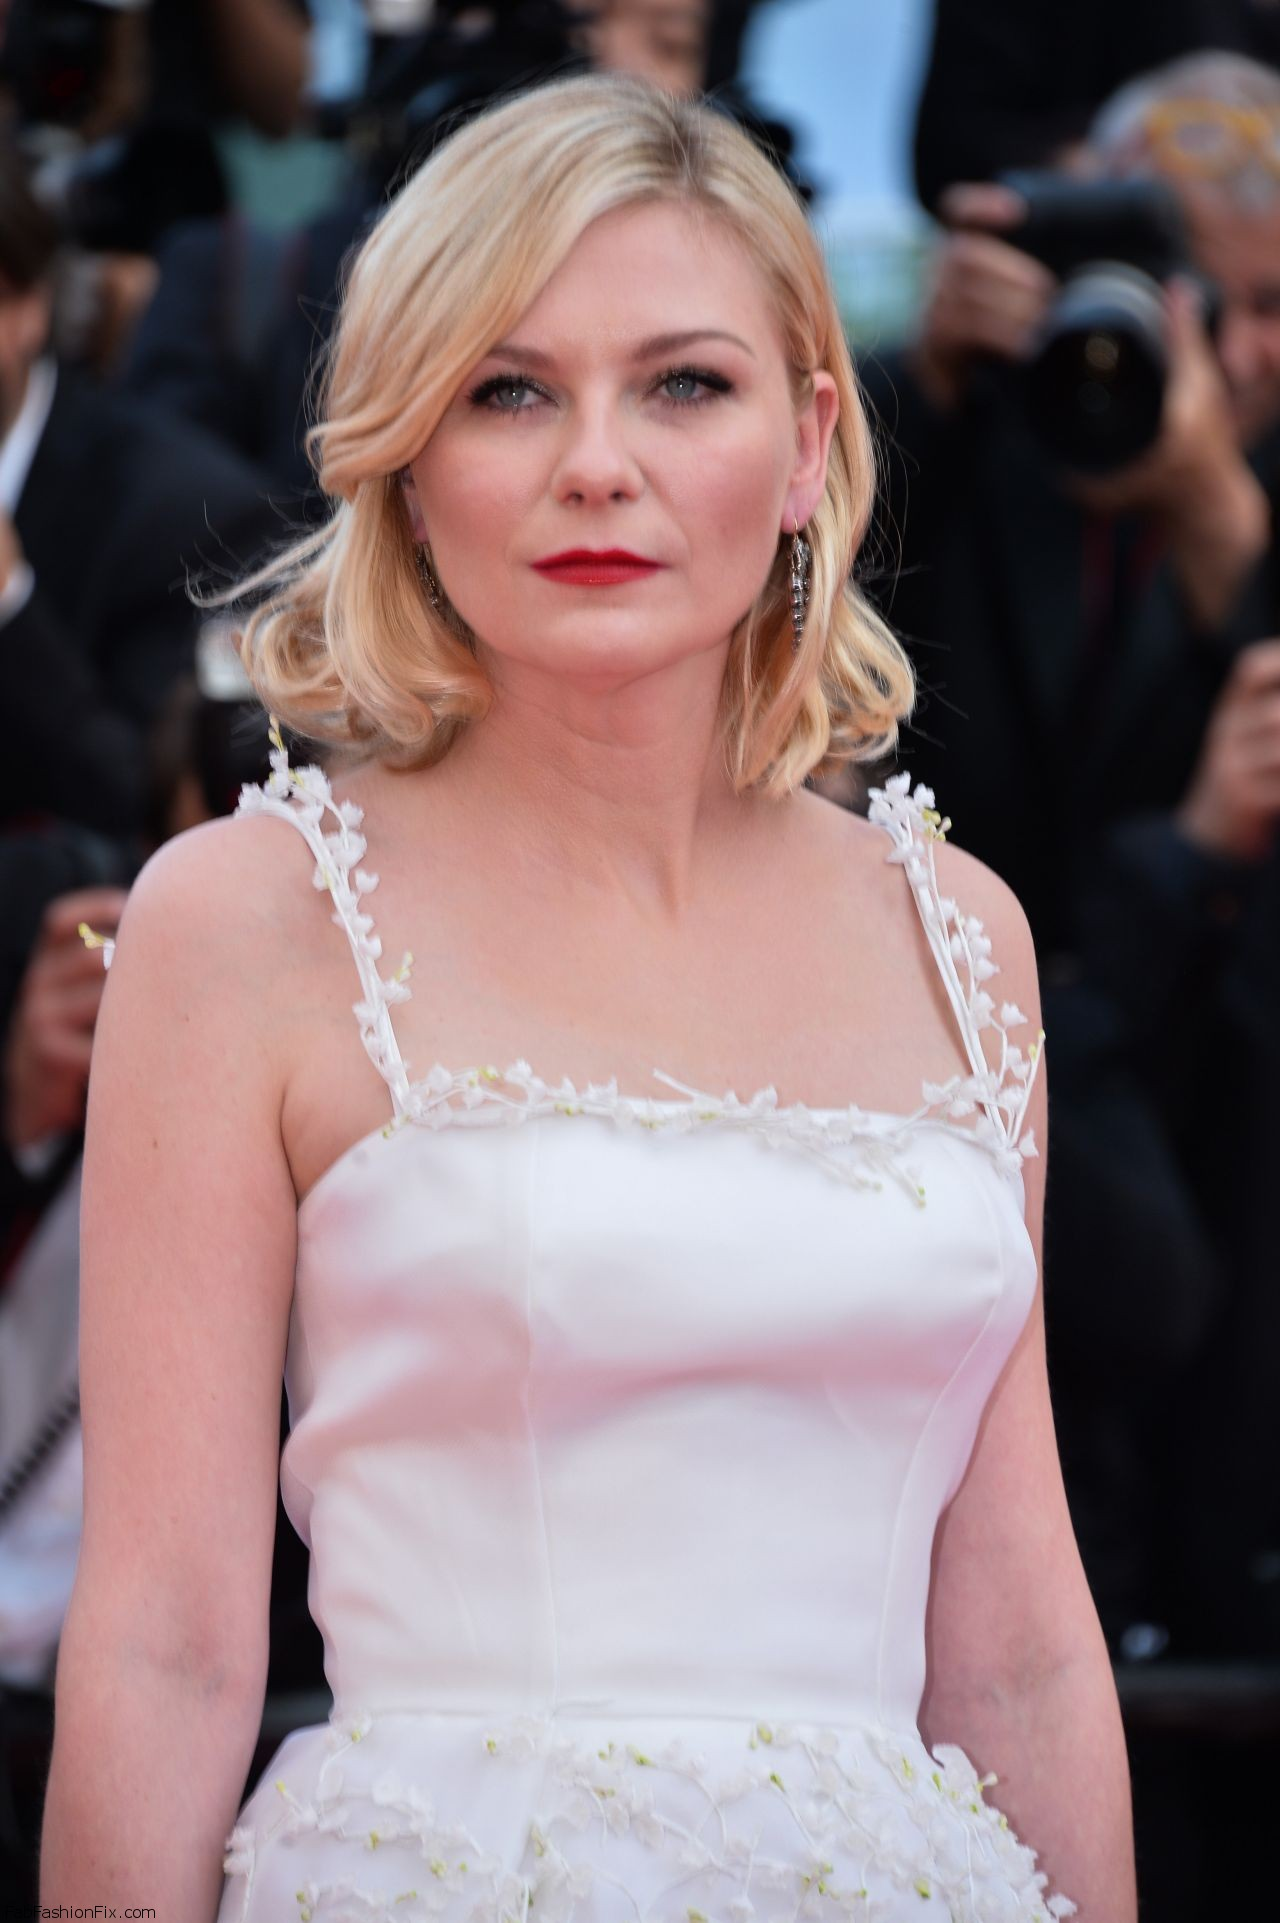 kirsten-dunst-the-loving-premiere-at-69th-cannes-film-festival-5-16-2016-1